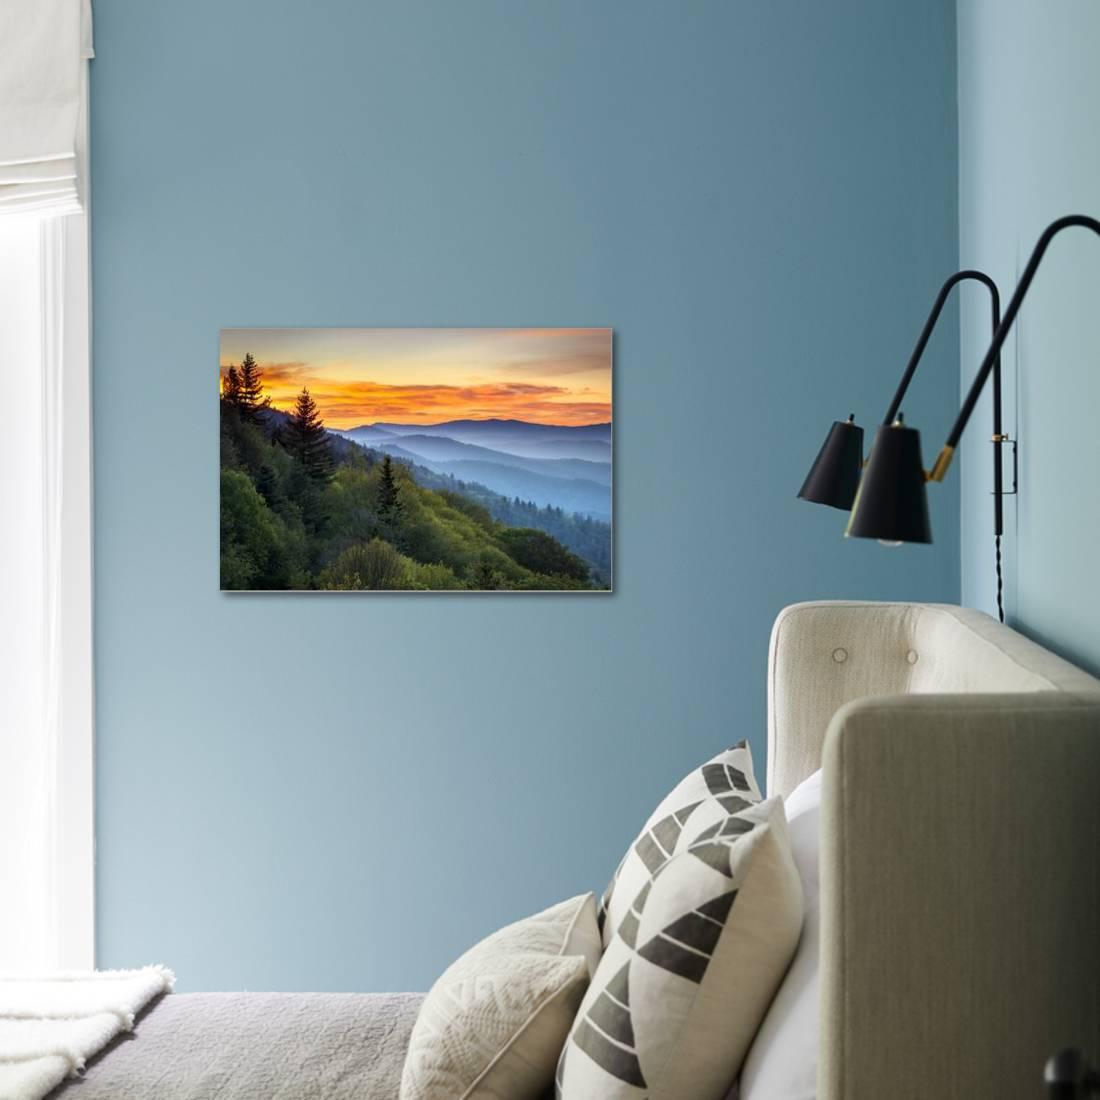 Great Smoky Mountains National Park Scenic Sunrise Landscape at ...